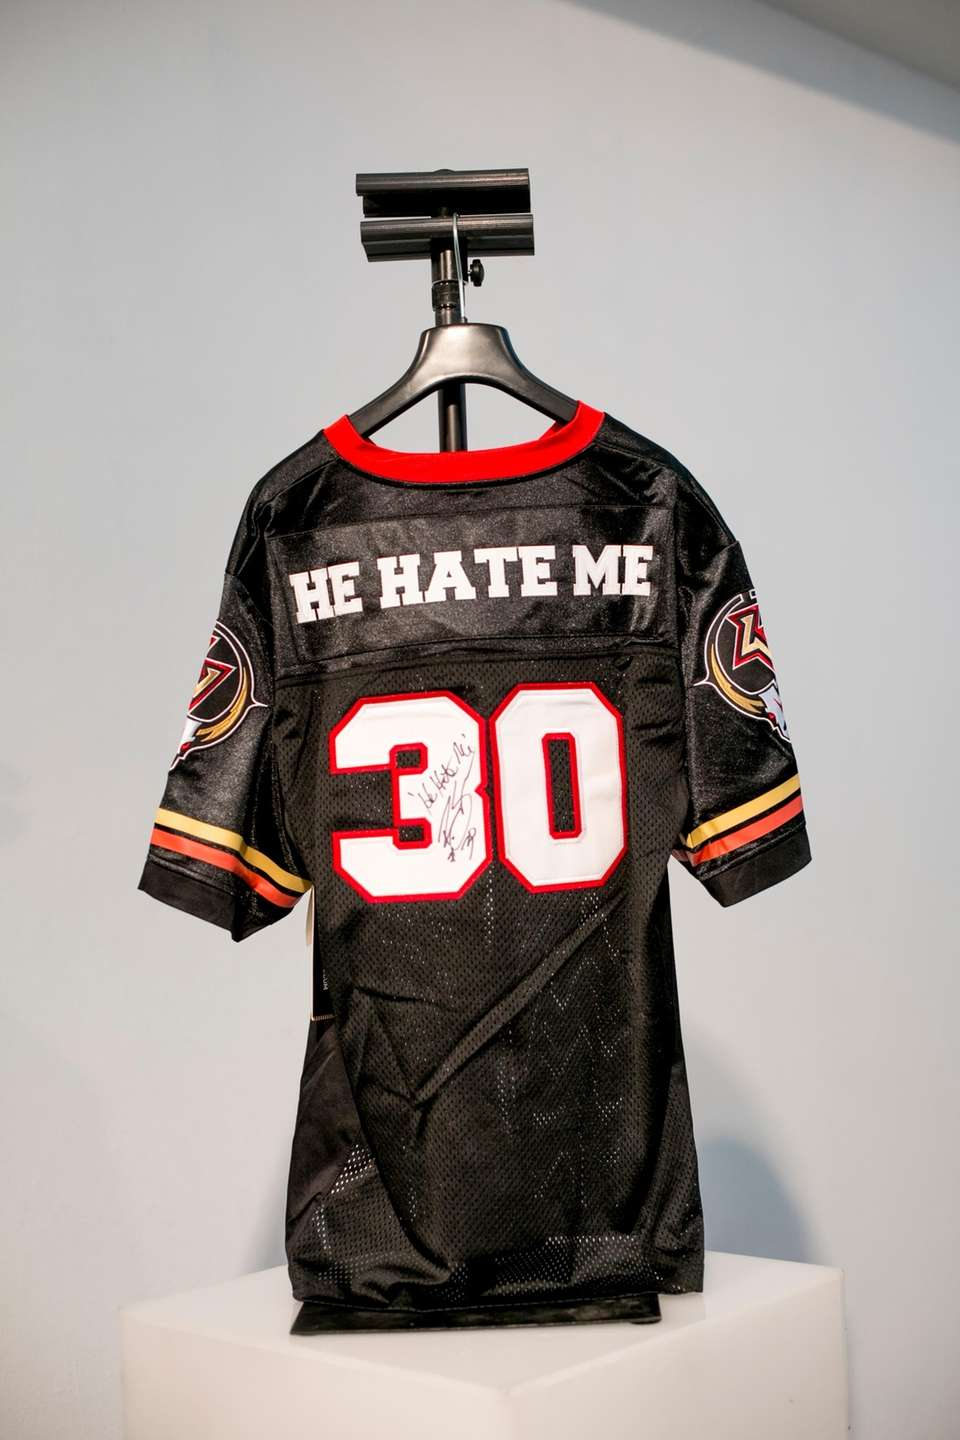 Las Vegas Outlaws player Rod Smart's jersey at